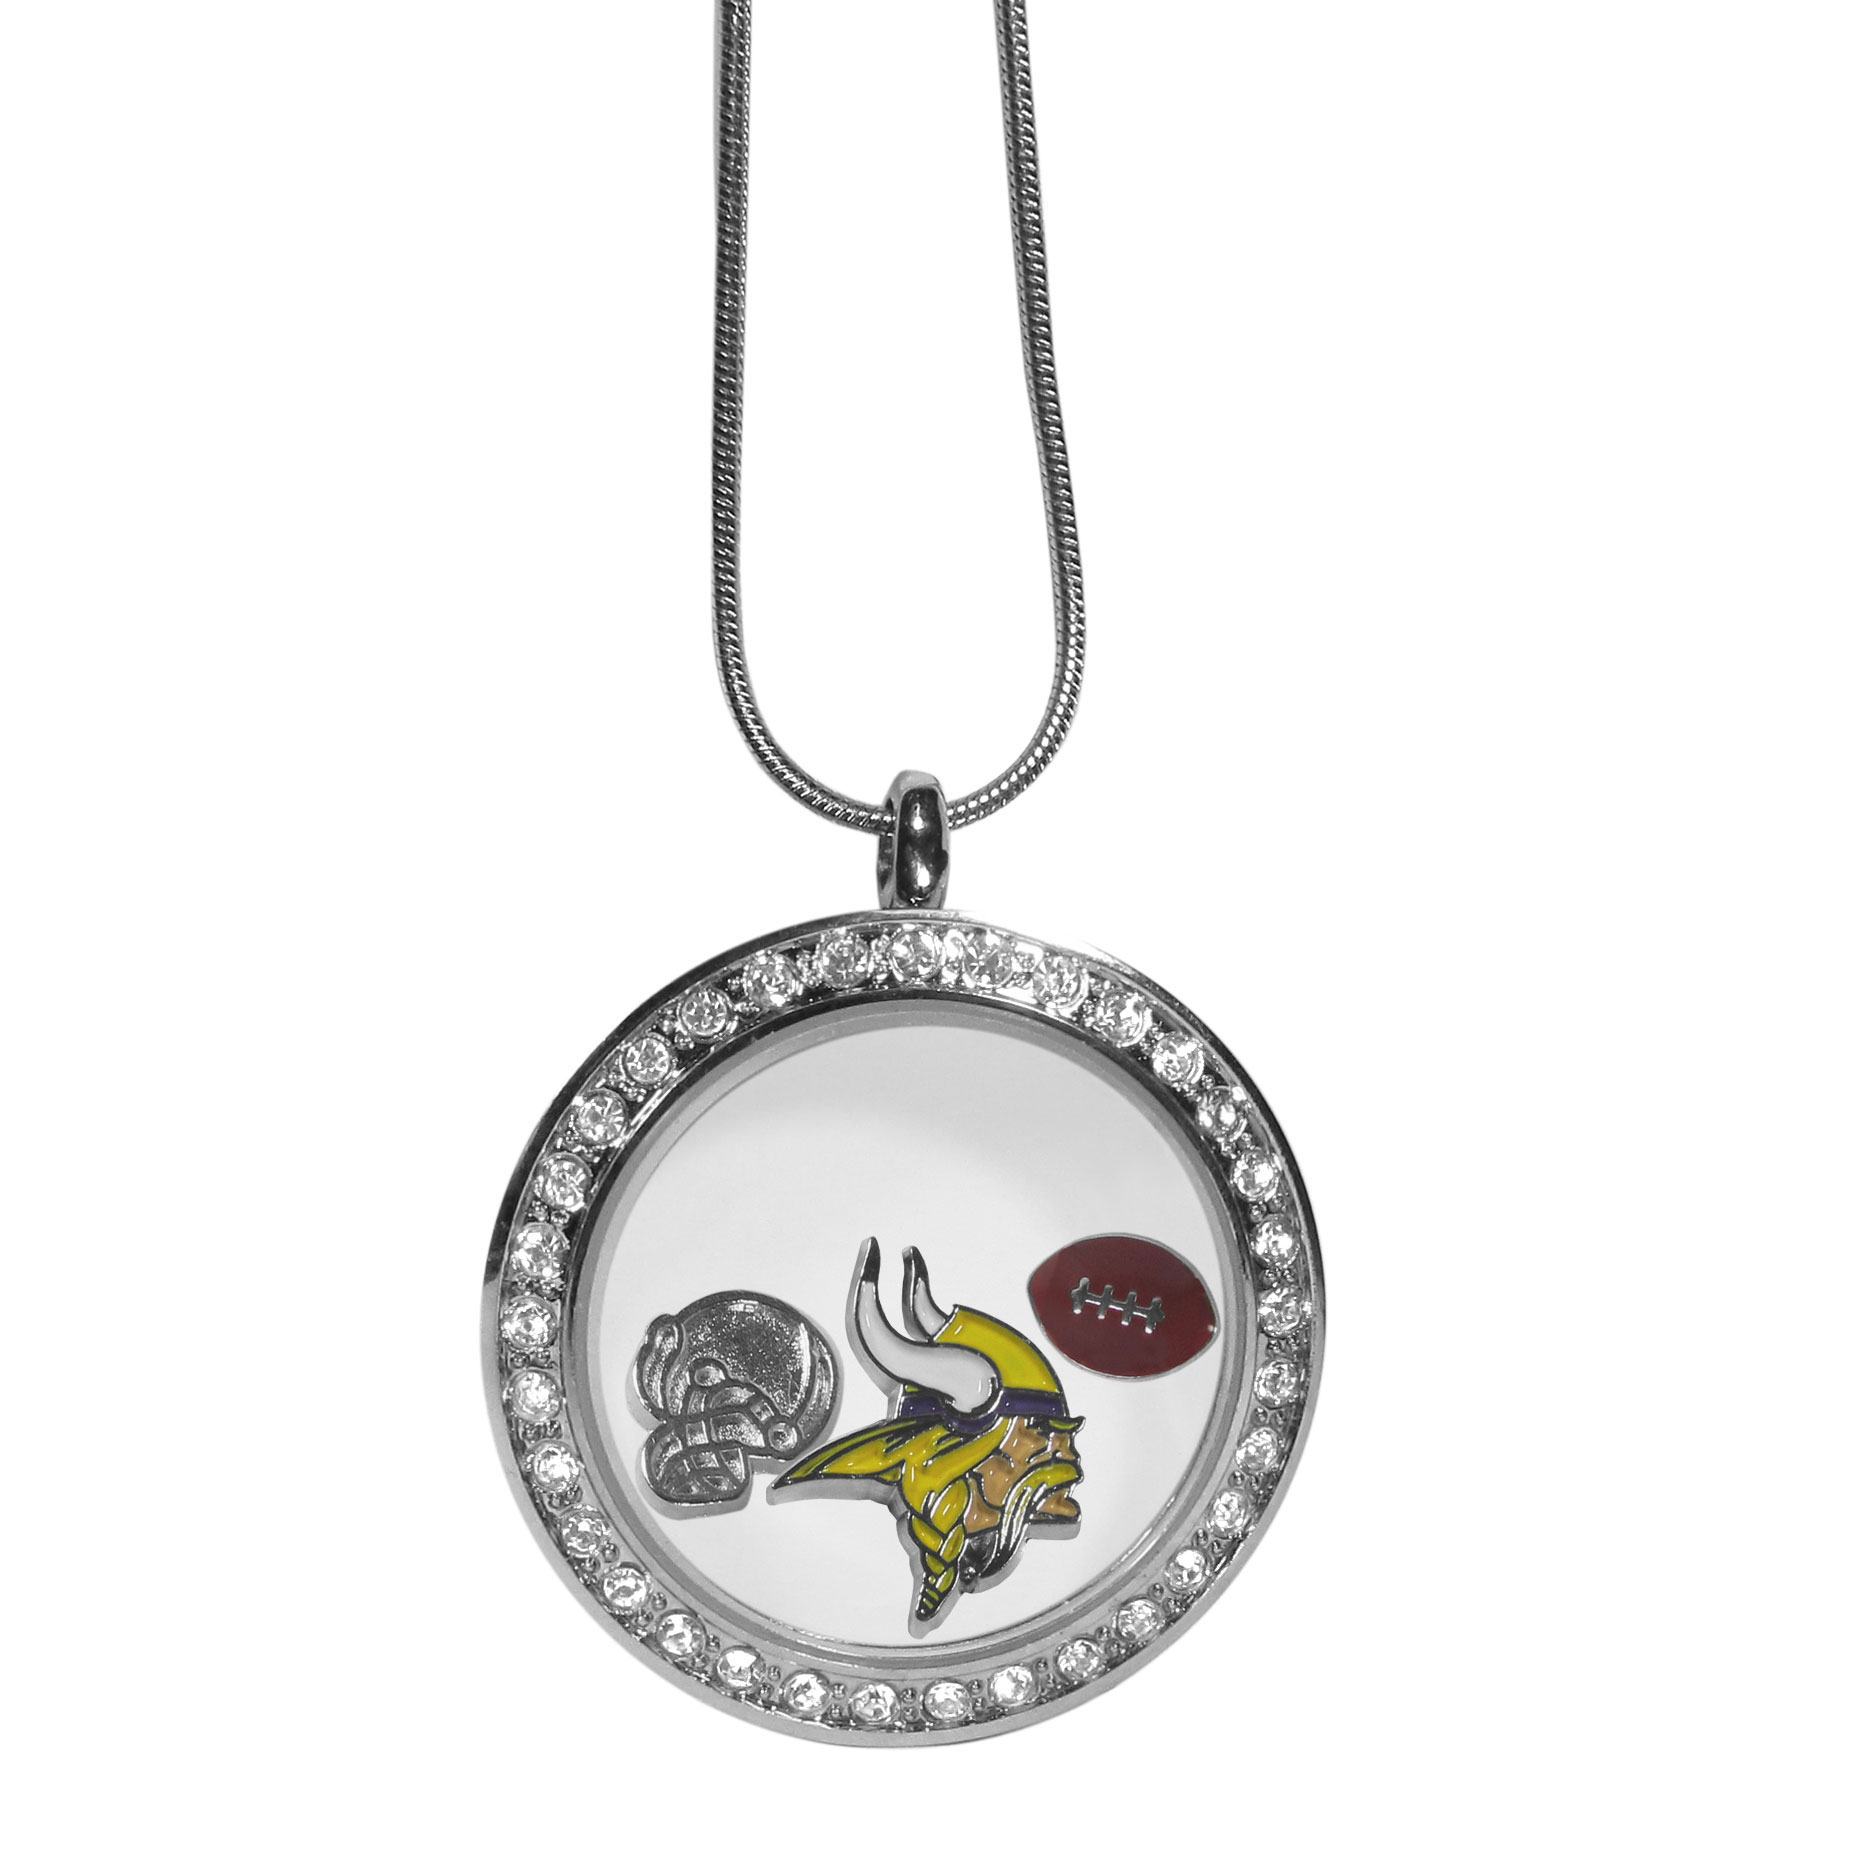 Minnesota Vikings Locket Necklace - We have taken the classic floating charm locket and combined with licensed sports charms to create a must have fan necklace. The necklace comes with 3 charms; 1 Minnesota Vikings charm, one football charm and one helmet charm. The charms float in a beautiful locket that has a strong magnetic closure with a rhinestone border. The locket comes on an 18 inch snake chain with 2 inch extender.